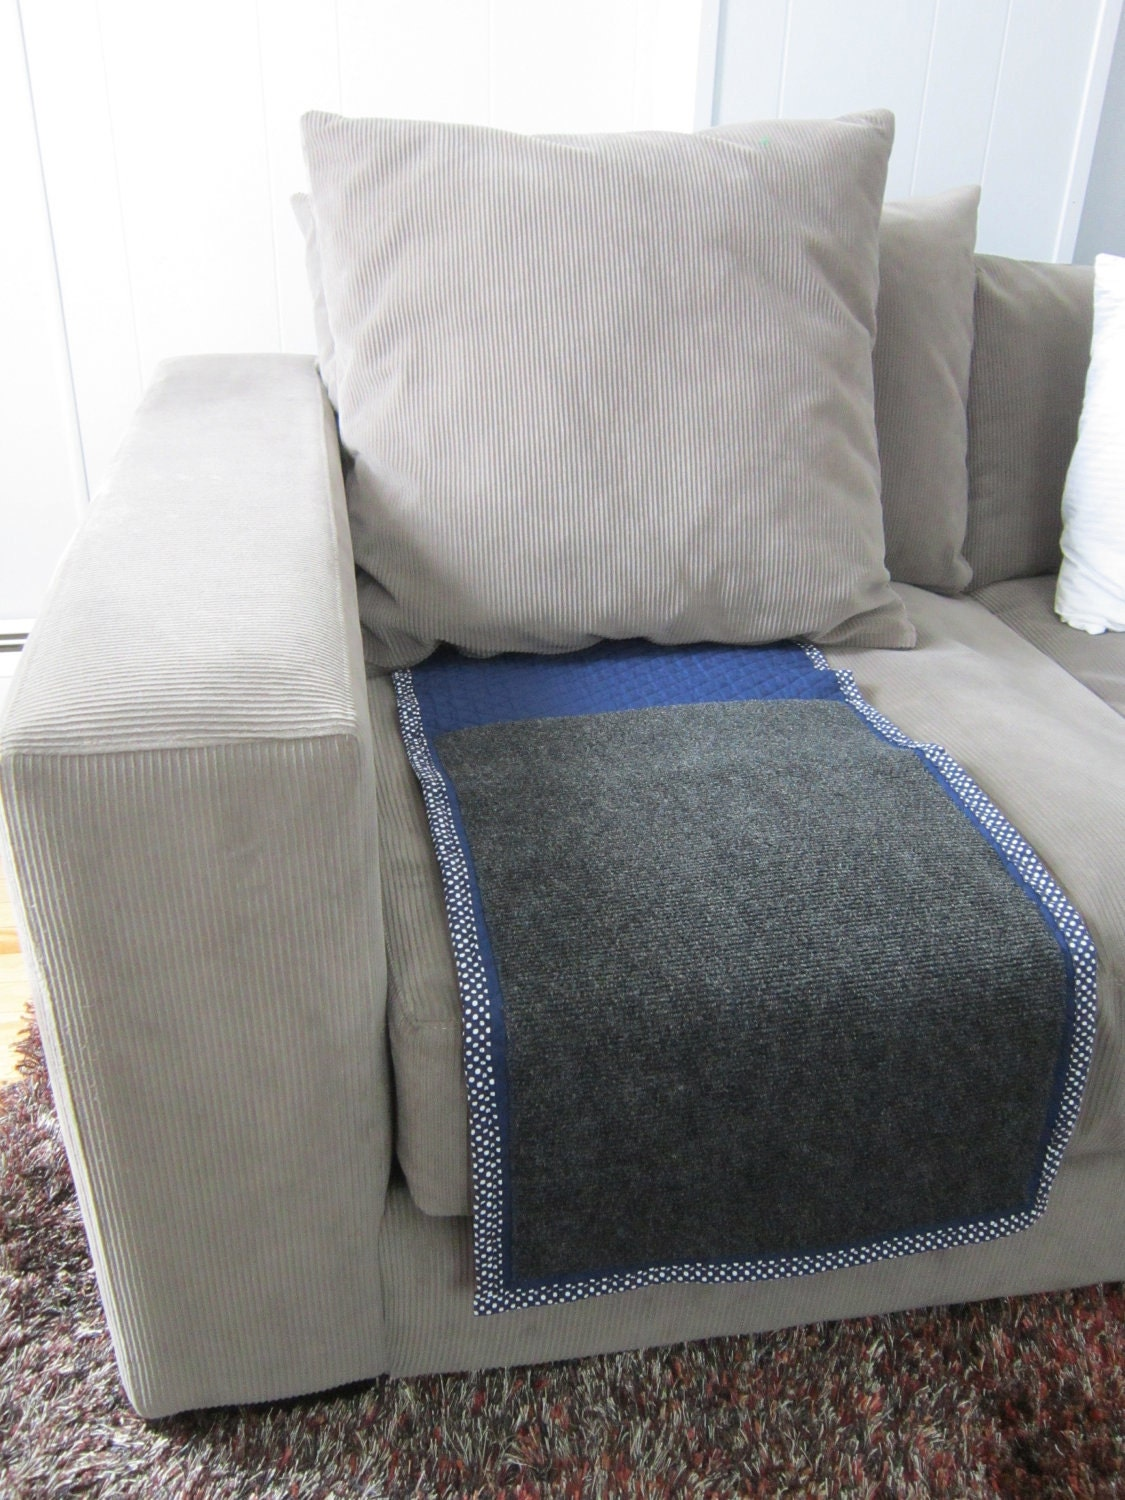 Cat Scratching Furniture Protection By Thepracticalcat On Etsy